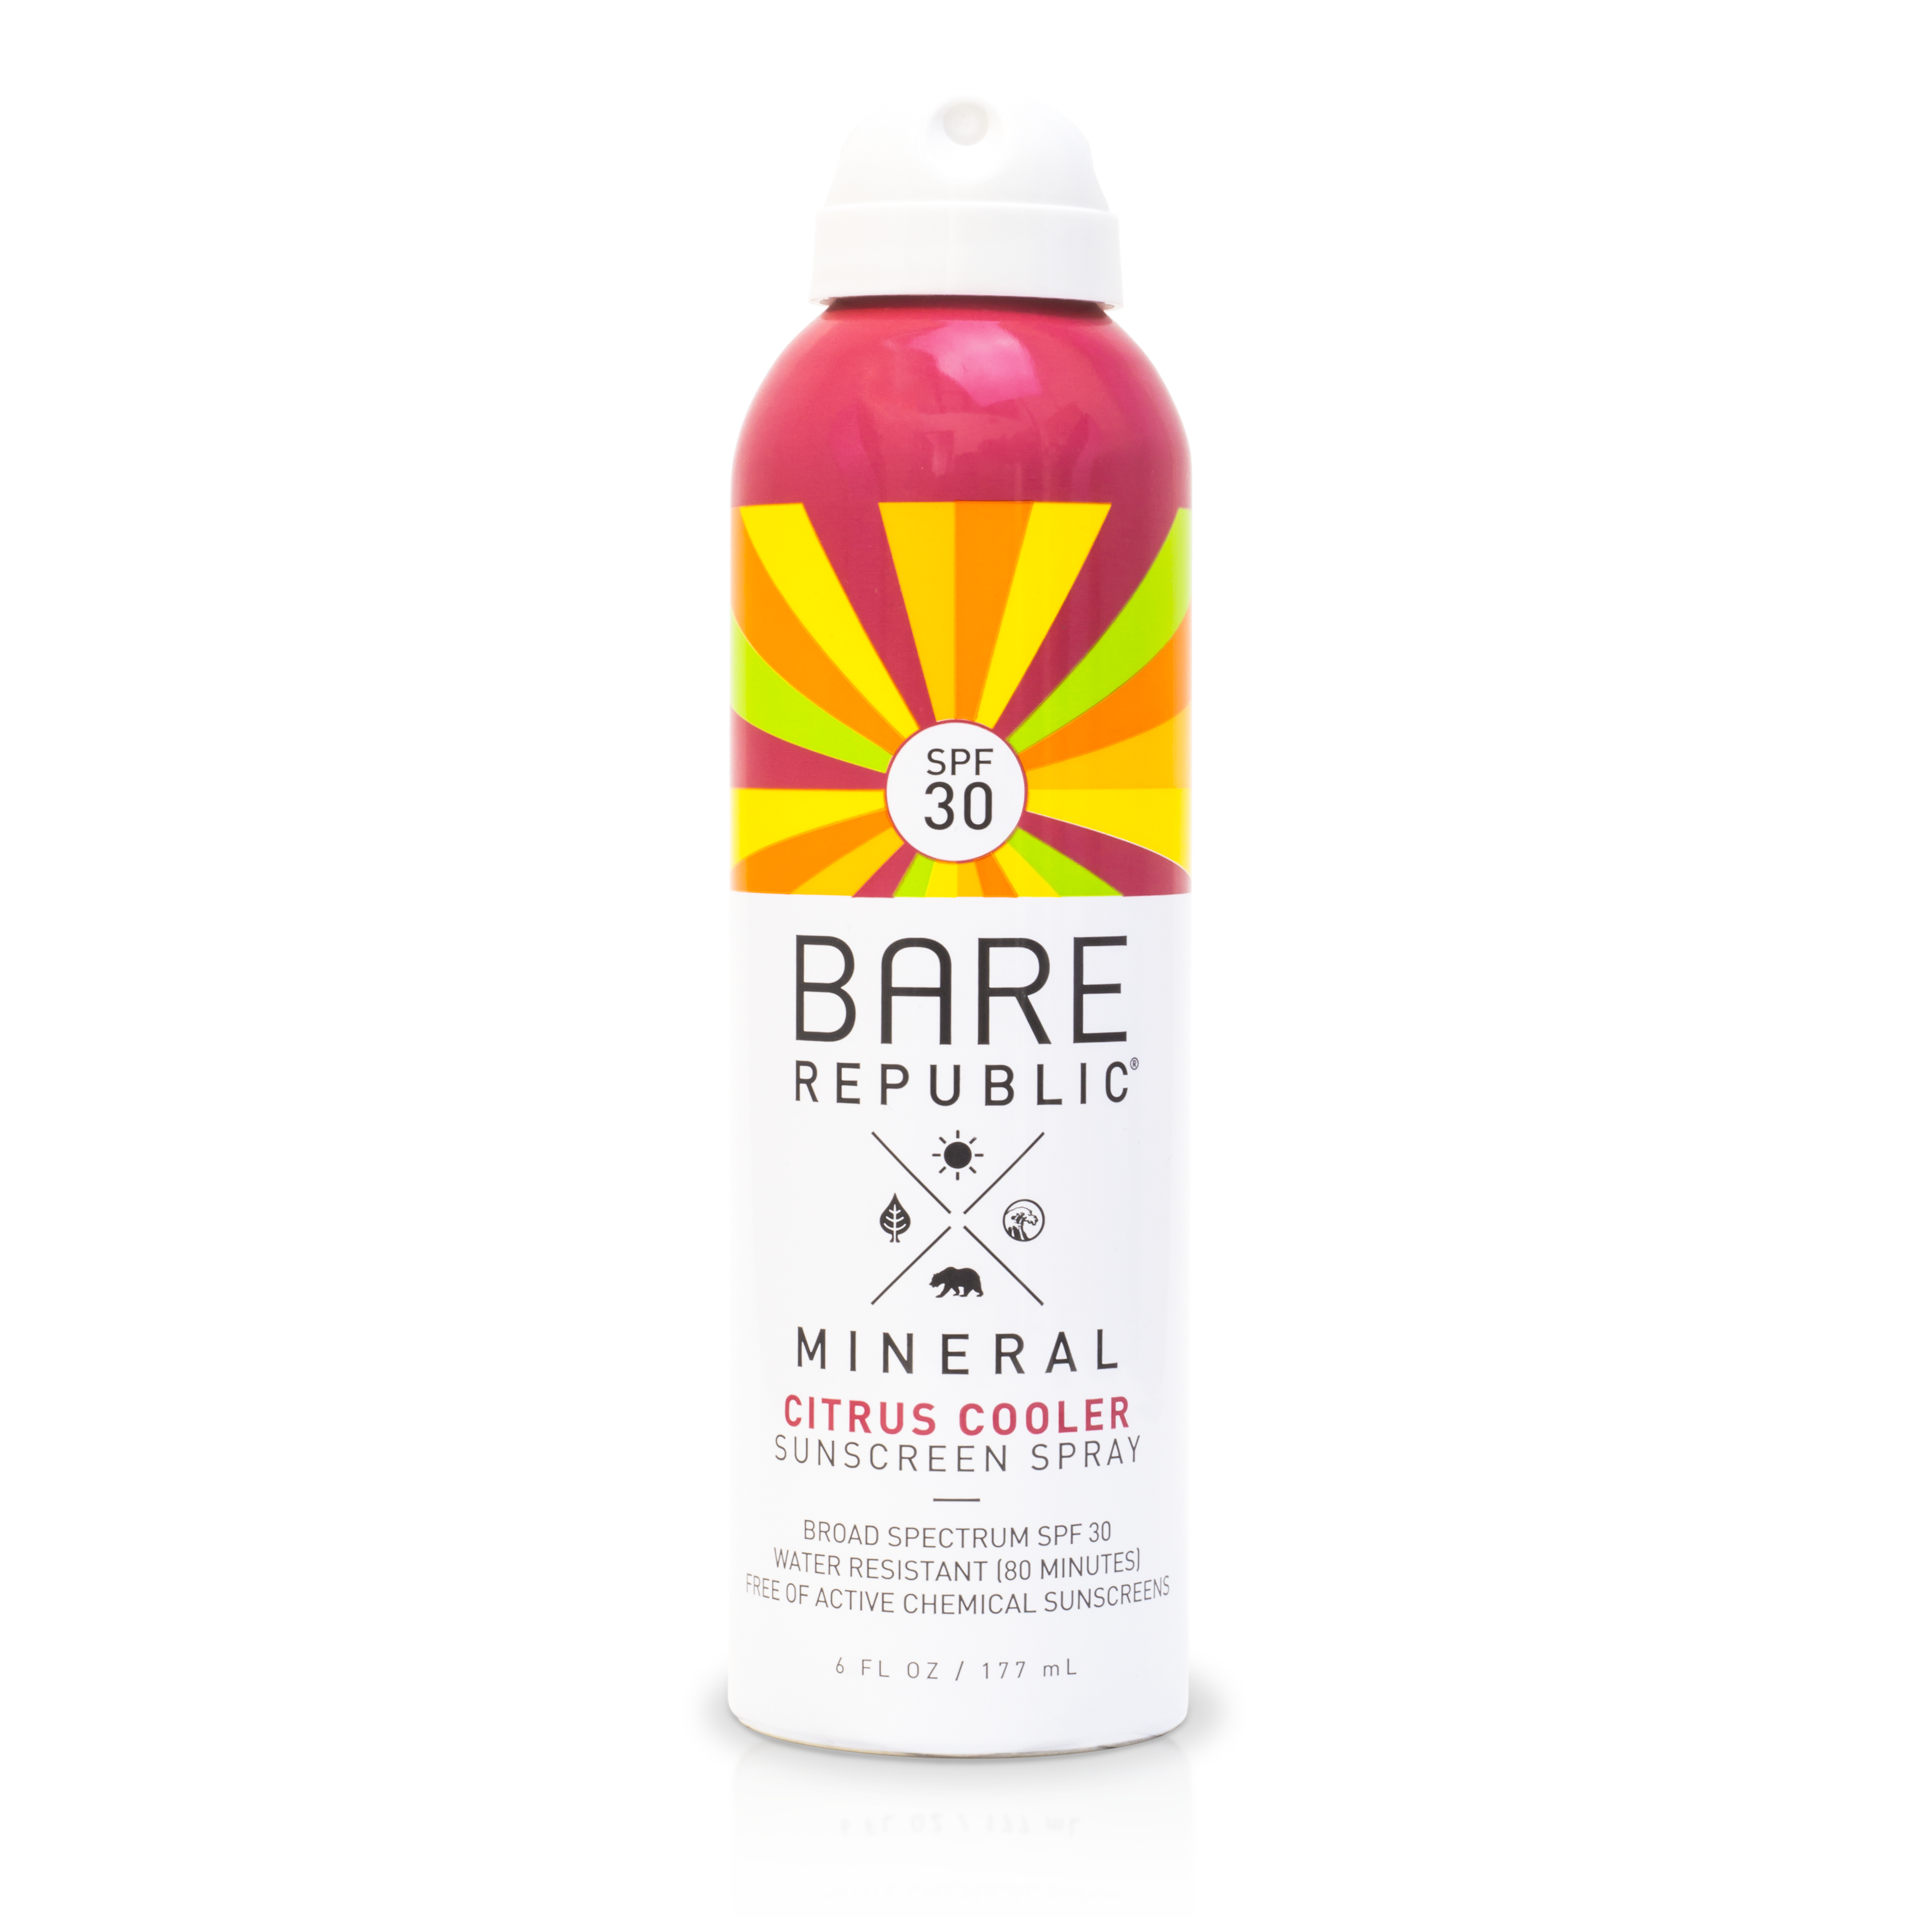 Bare Republic Mineral SPF 30 Sport Citrus Cooler Sunscreen Spray